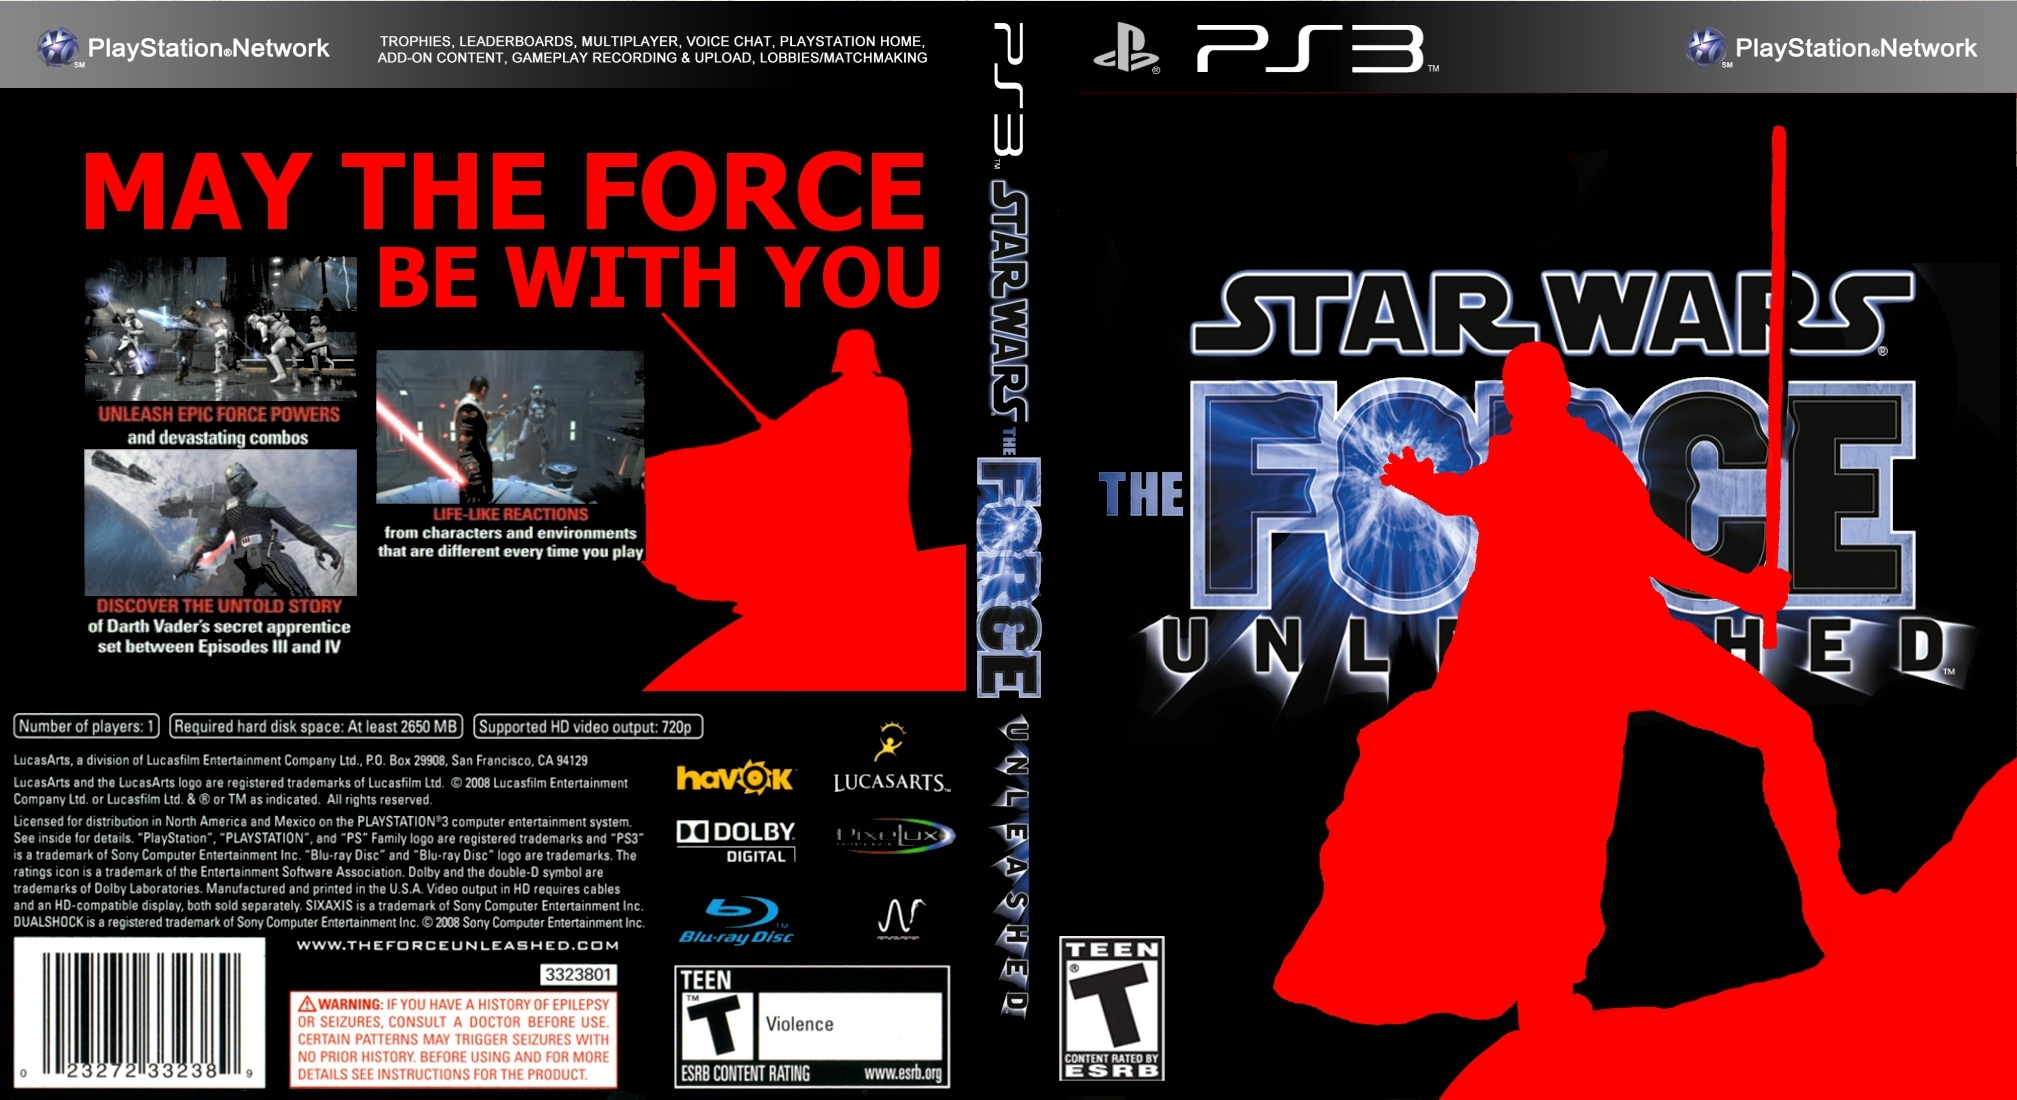 Star Wars: The Force Unleashed box cover